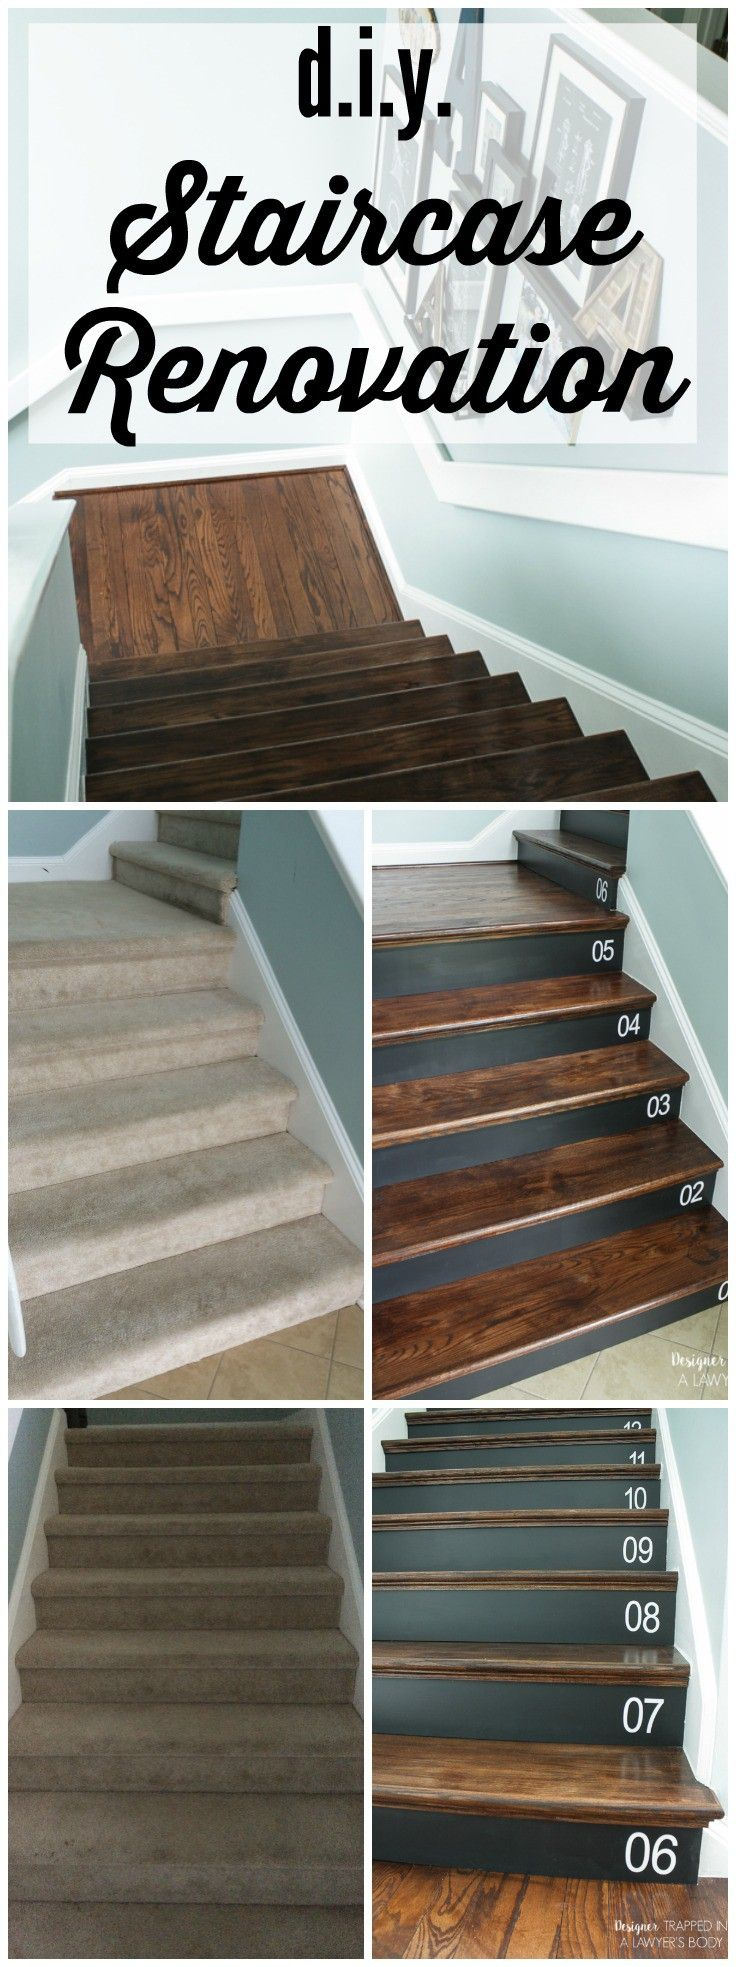 25 best ideas about staircase makeover on pinterest for Diy staircase makeover